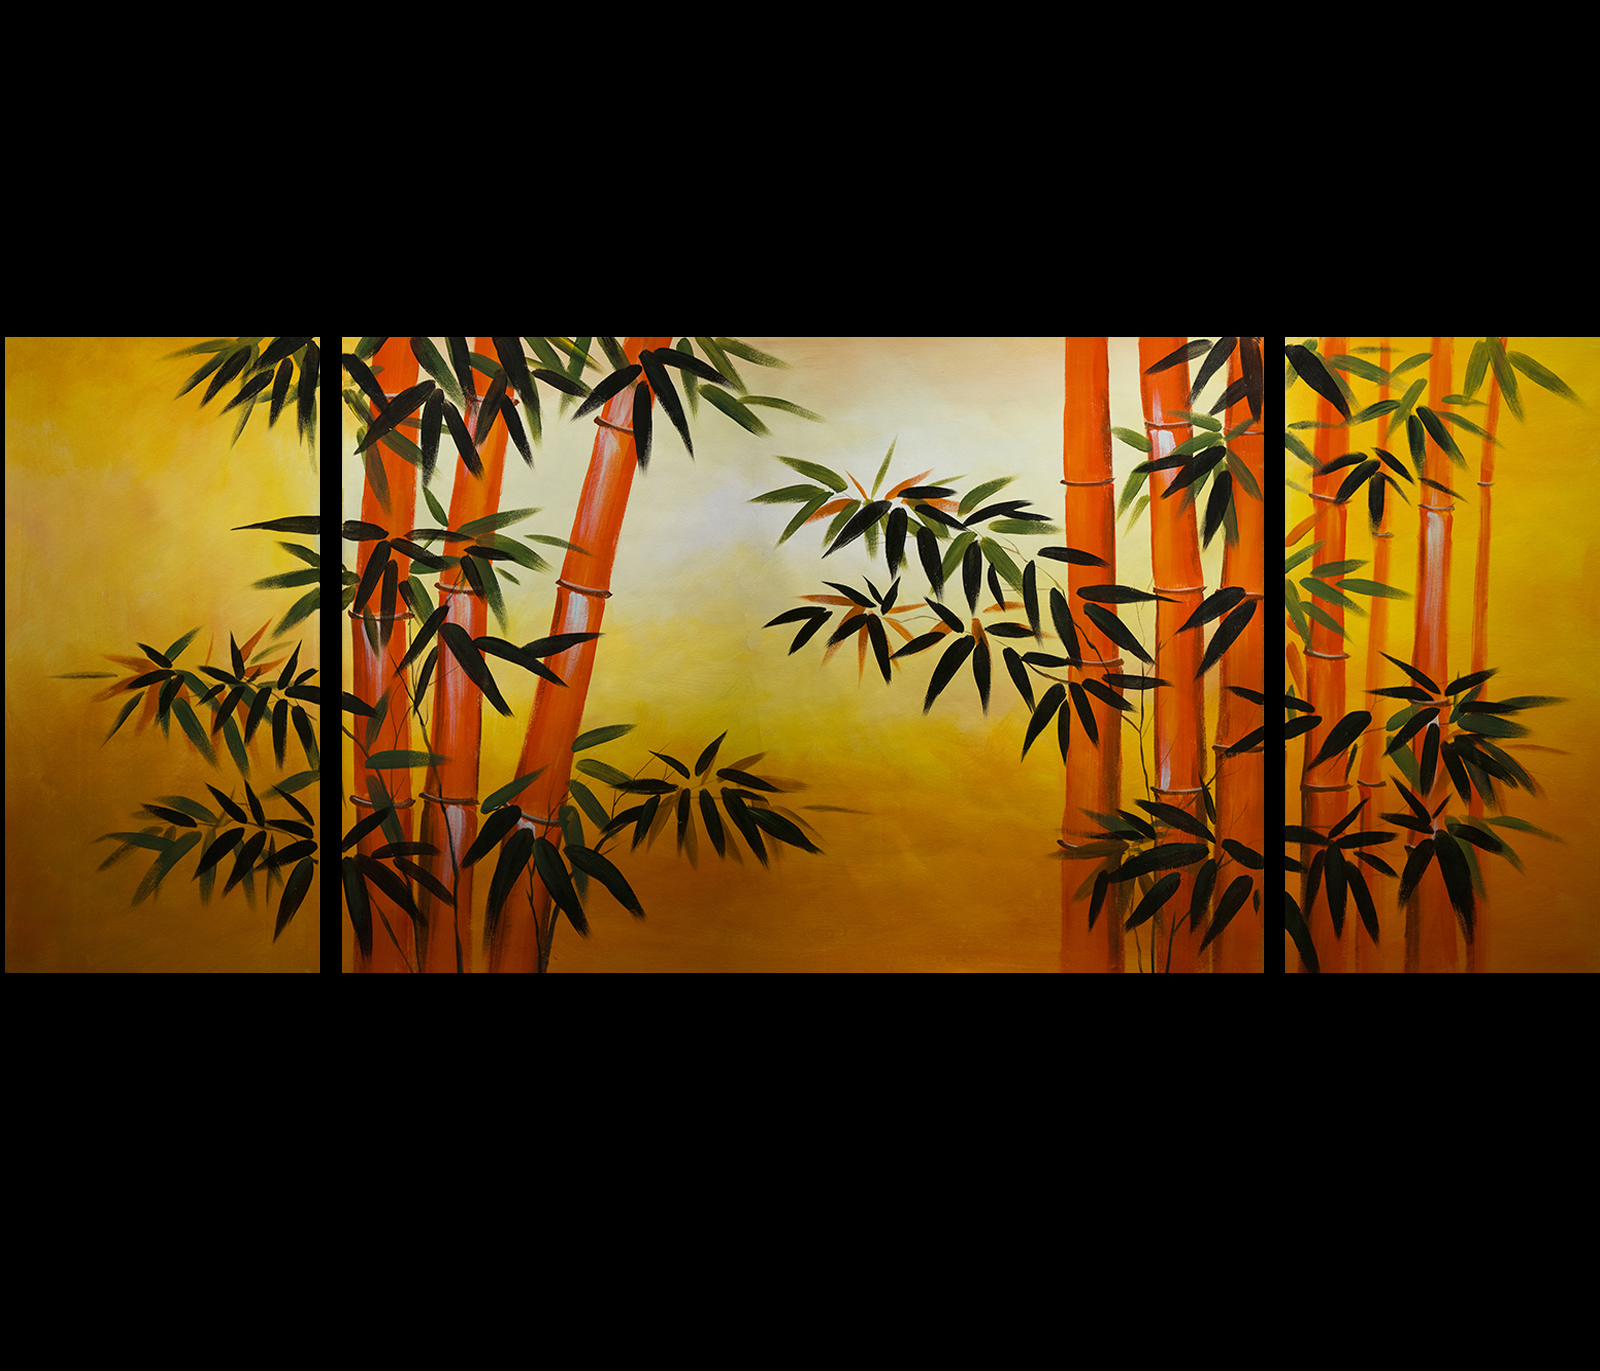 Canvas Art Fine Art Prints Wall Art Decor Japanese Bamboo Art